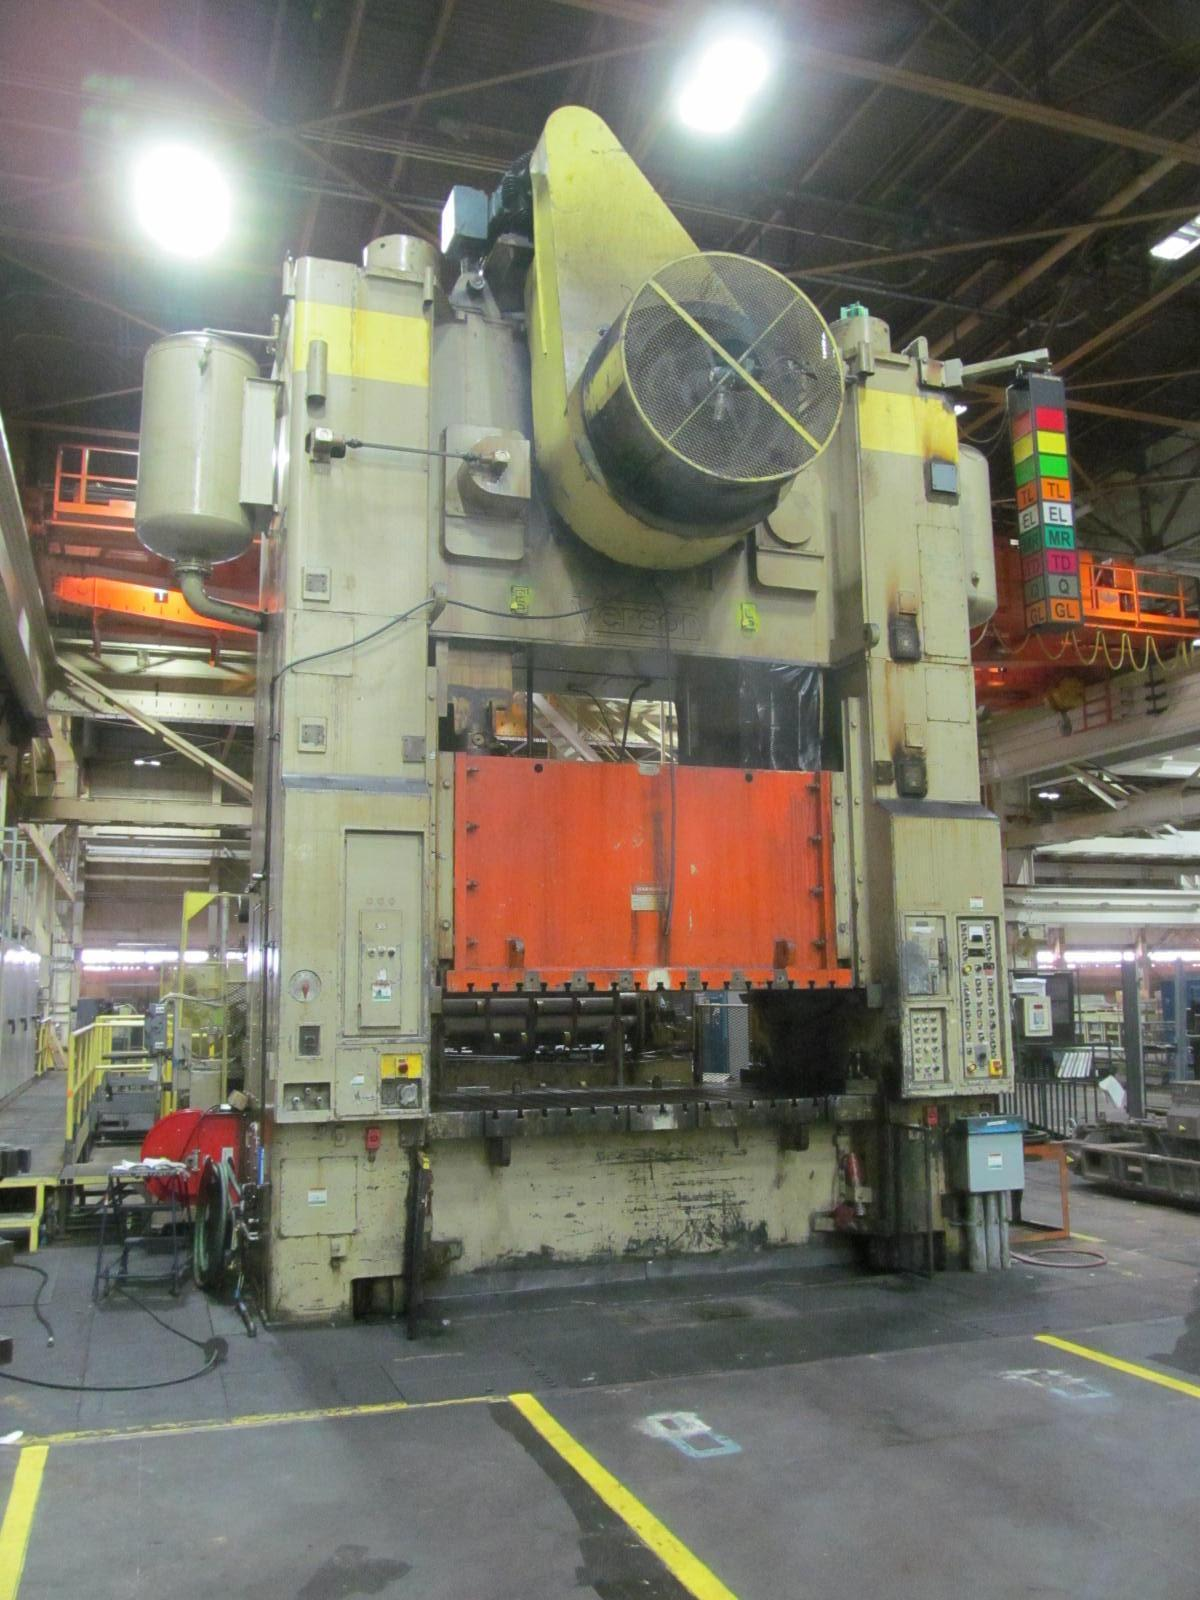 "1000 TON VERSON STRAIGHT SIDE ECCENTRIC GEARED PRESS, MODEL SE4-1000-108-72, 12"" STR, 40"" SH, 12"" ADJ, 108"" LR X 72"" FB, 20-40 SPM, WITH WEAN FEEDLINE"